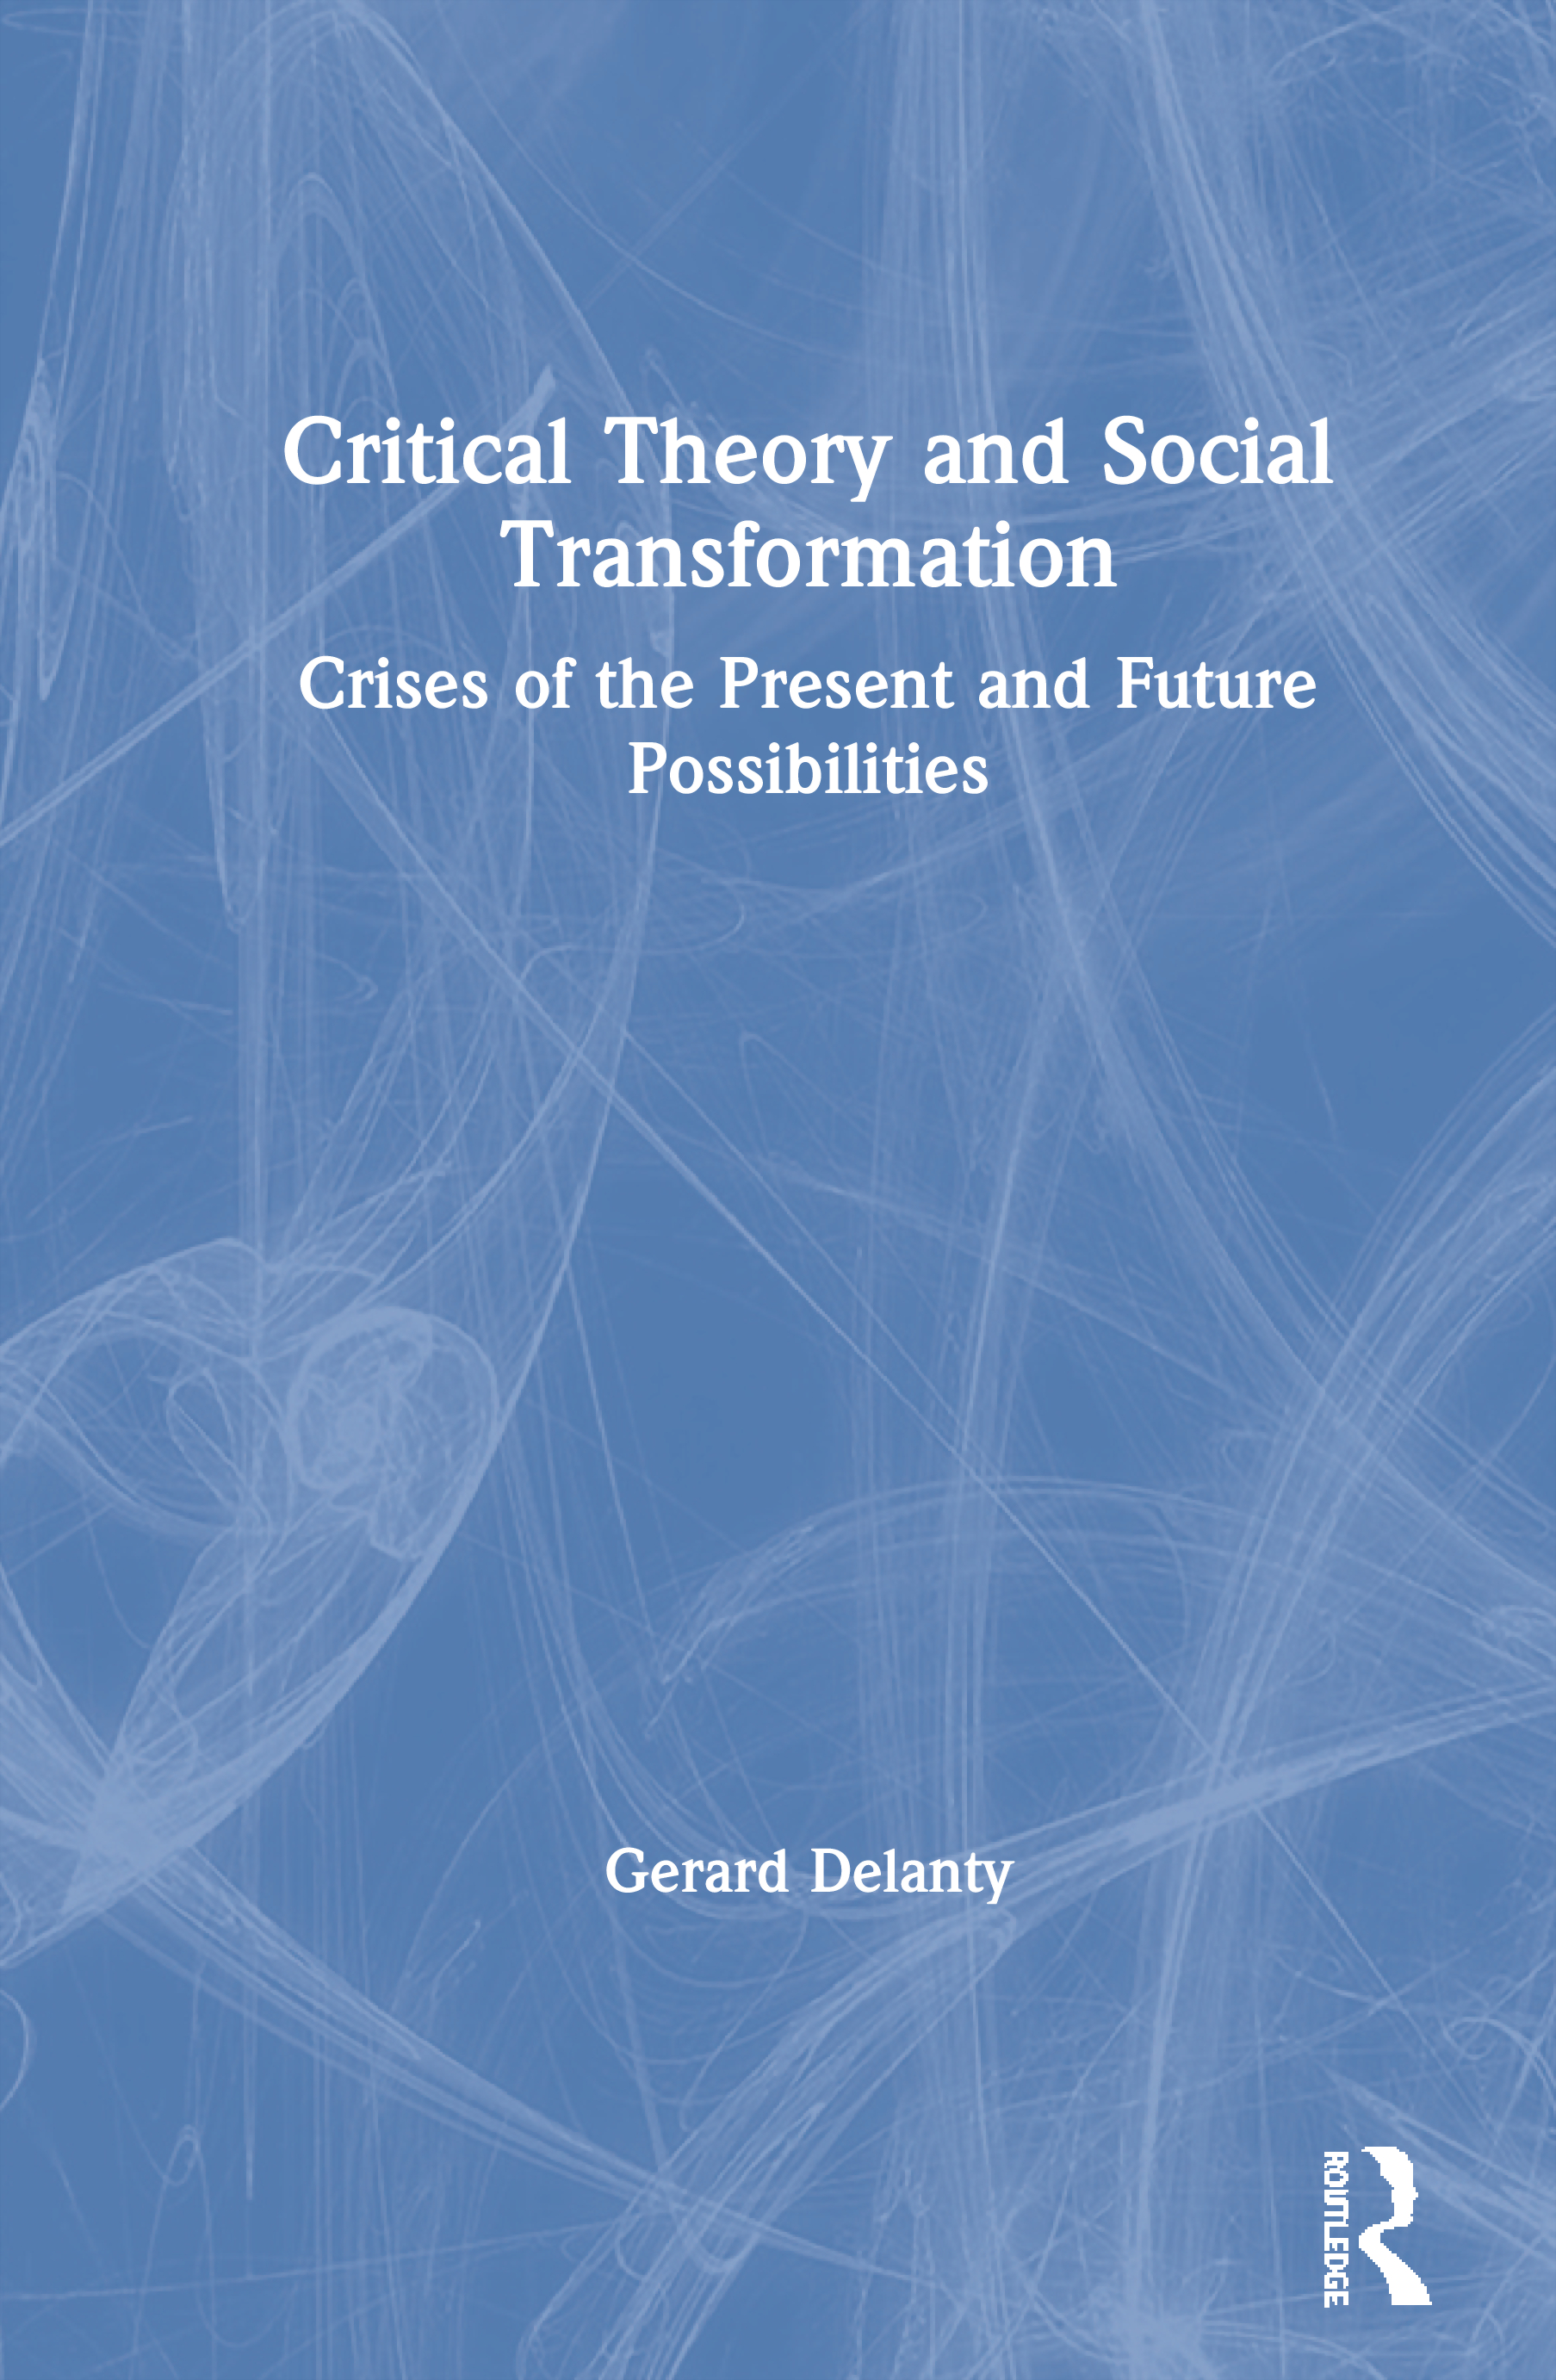 Critical Theory and Social Transformation: Crises of the Present and Future Possibilities, 1st Edition (Paperback) book cover